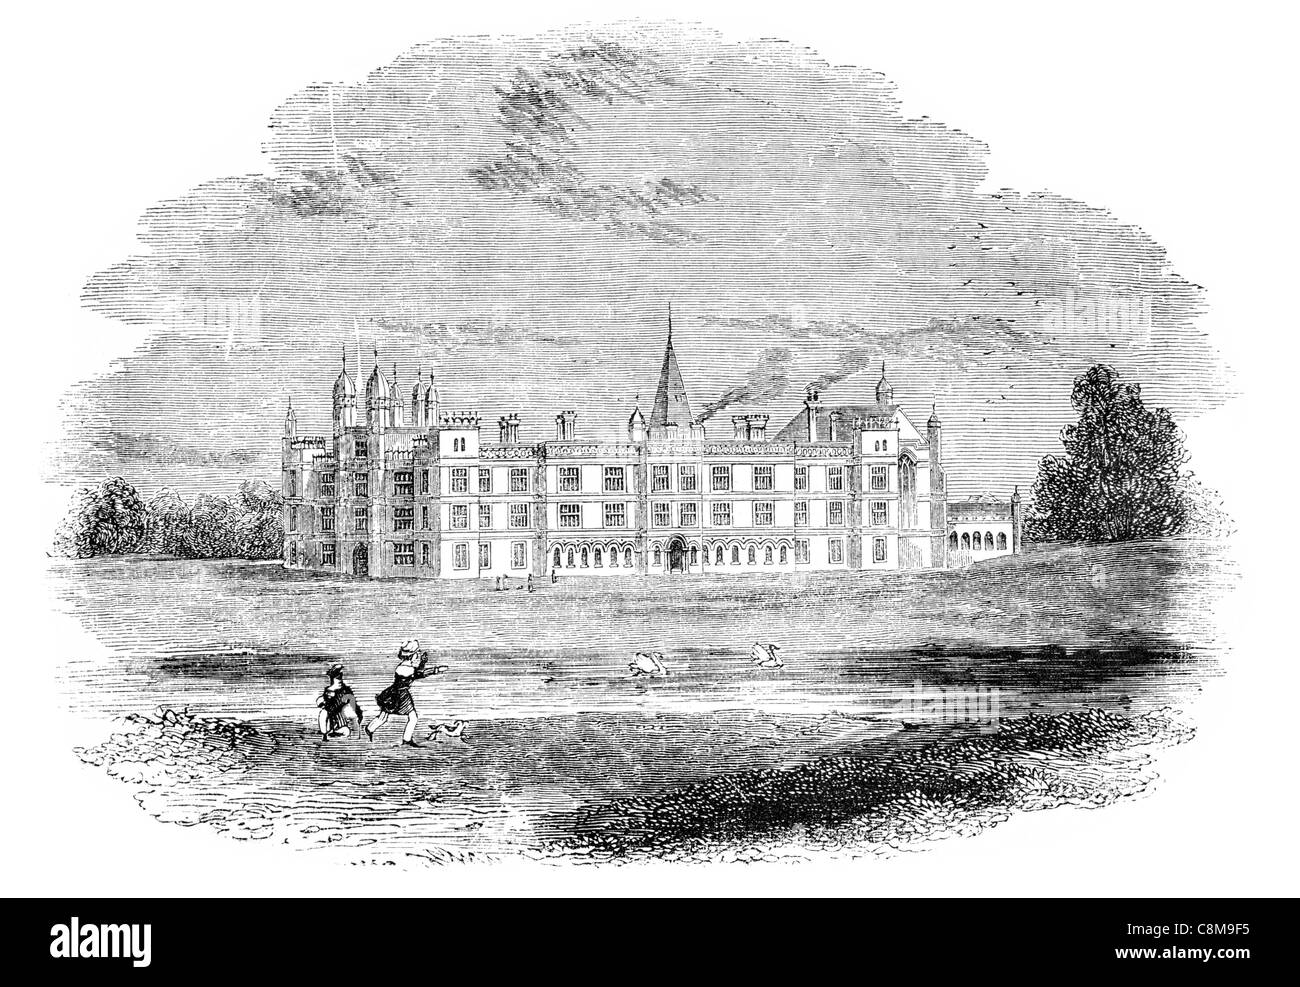 16th Century Burghley house country house Stamford, Lincolnshire Stock Photo